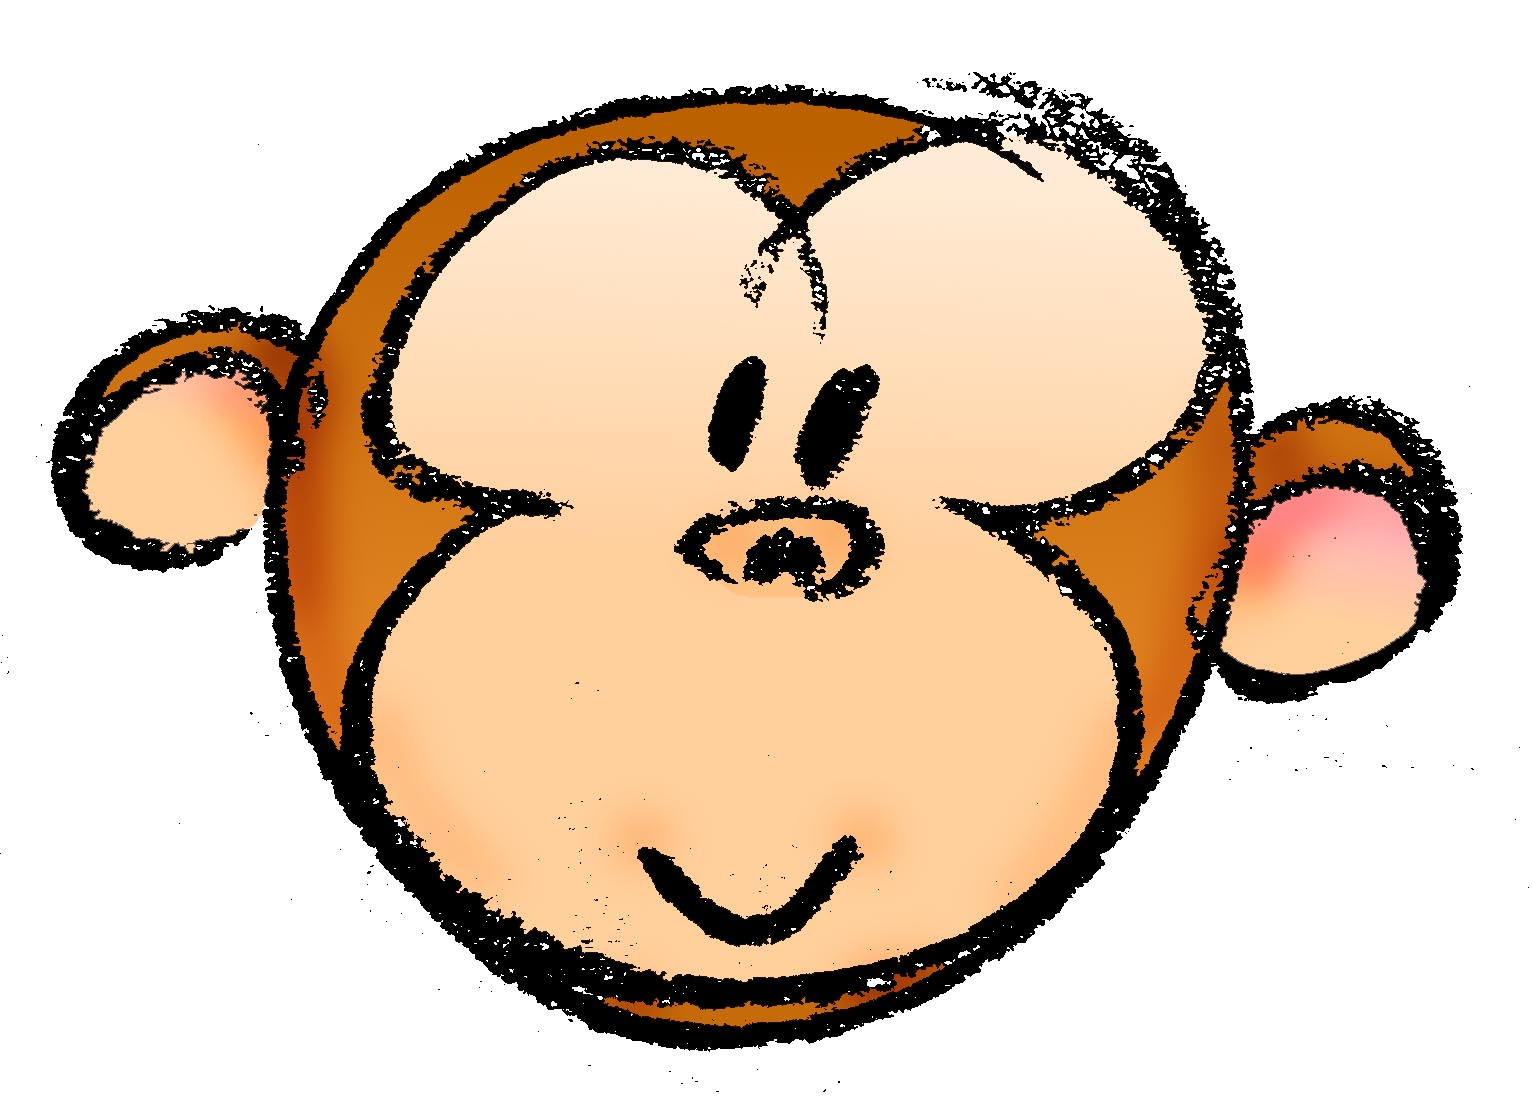 3 monkeys clipart faces banner transparent download How to Draw a Cartoon Monkey Face: 14 Steps (with Pictures) banner transparent download